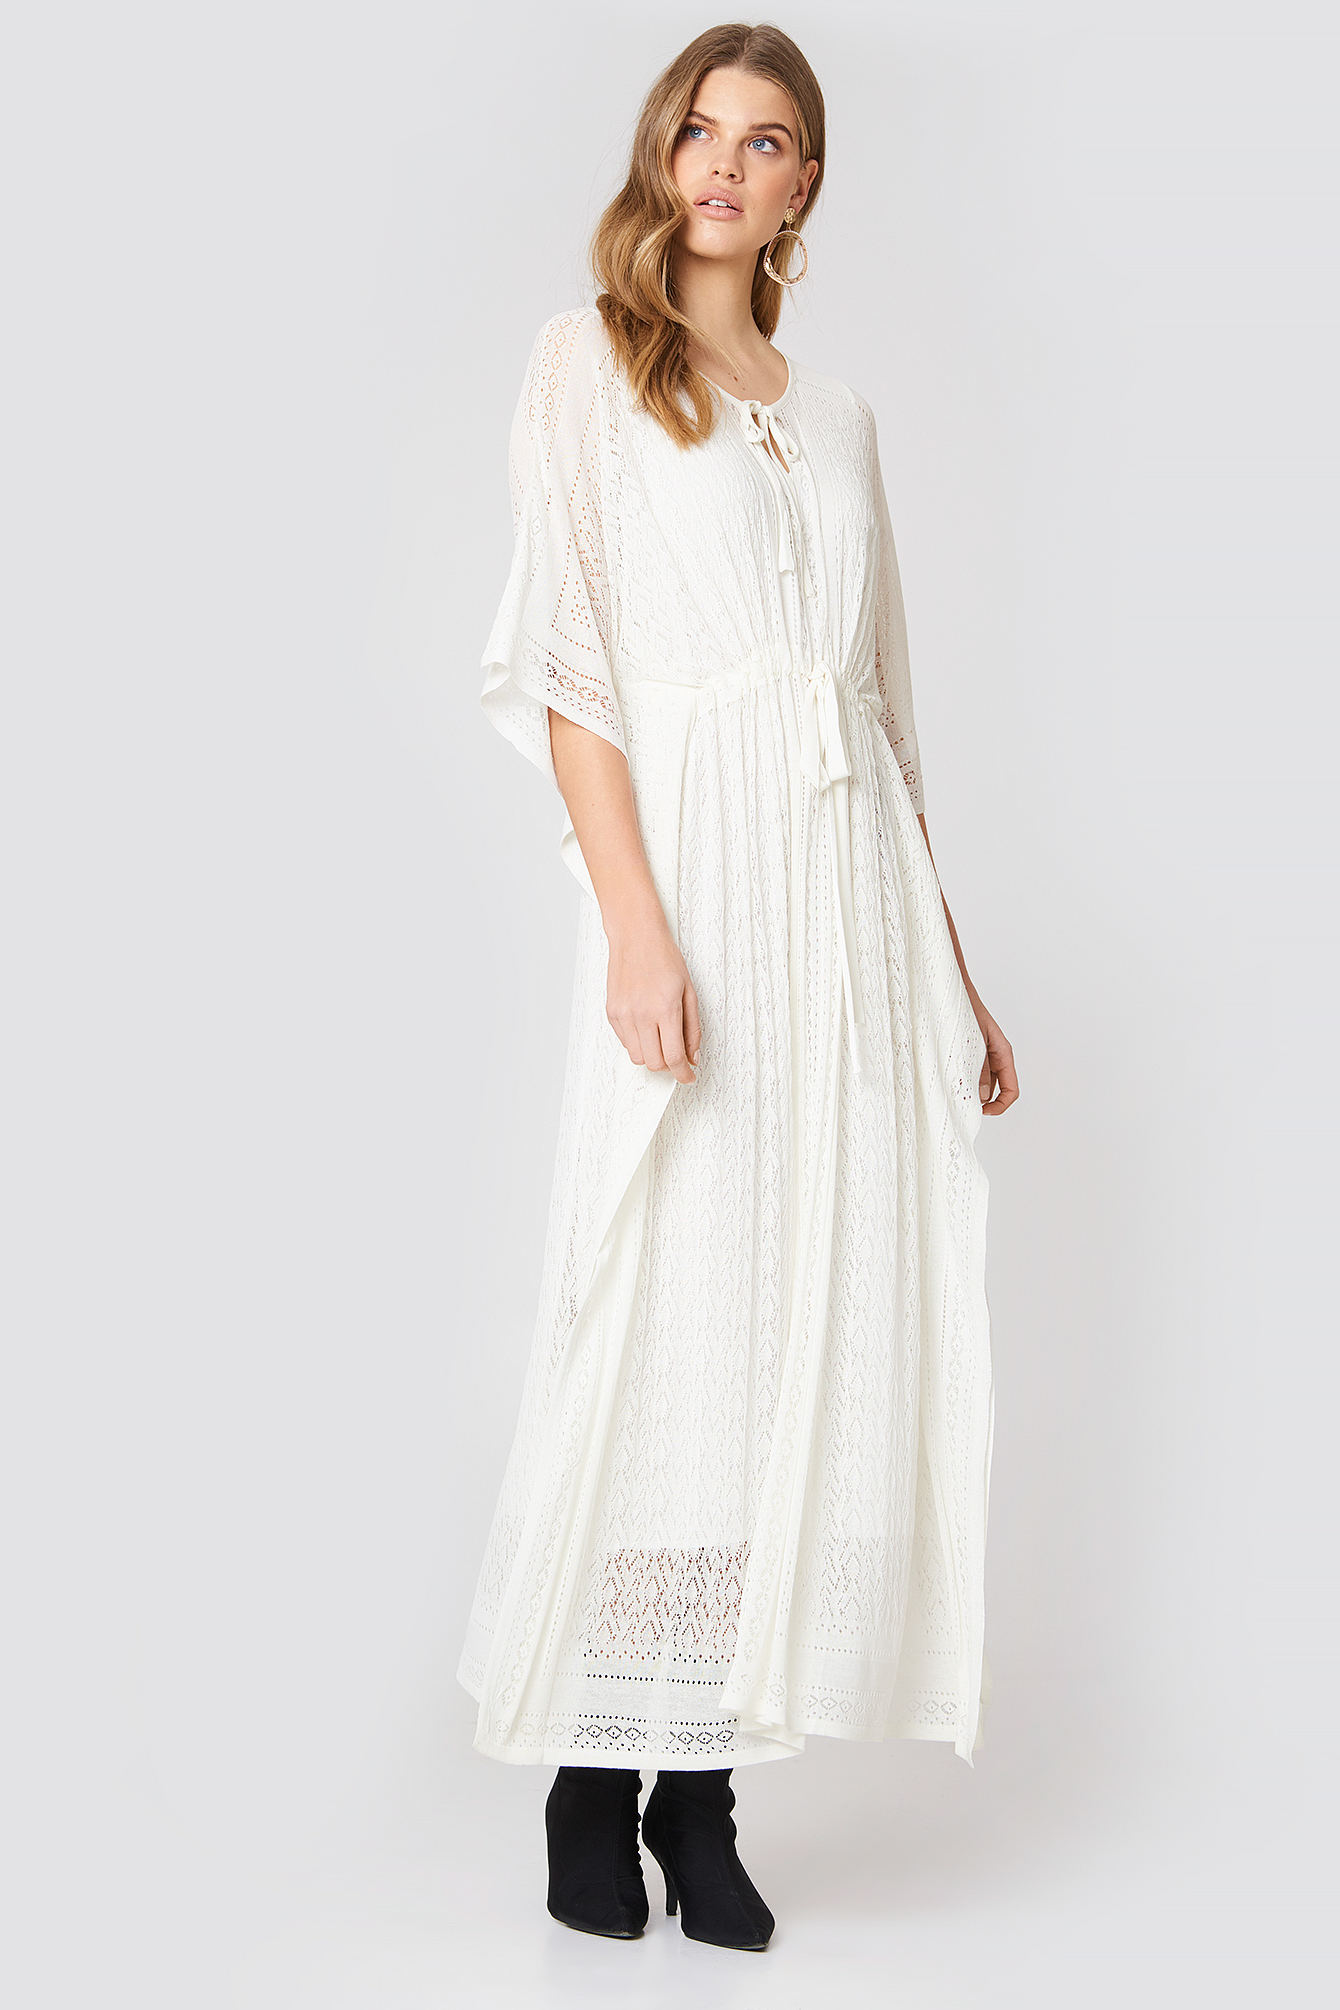 ABITO MADREPERLA LUNGO MAXI DRESS - WHITE, OFFWHITE